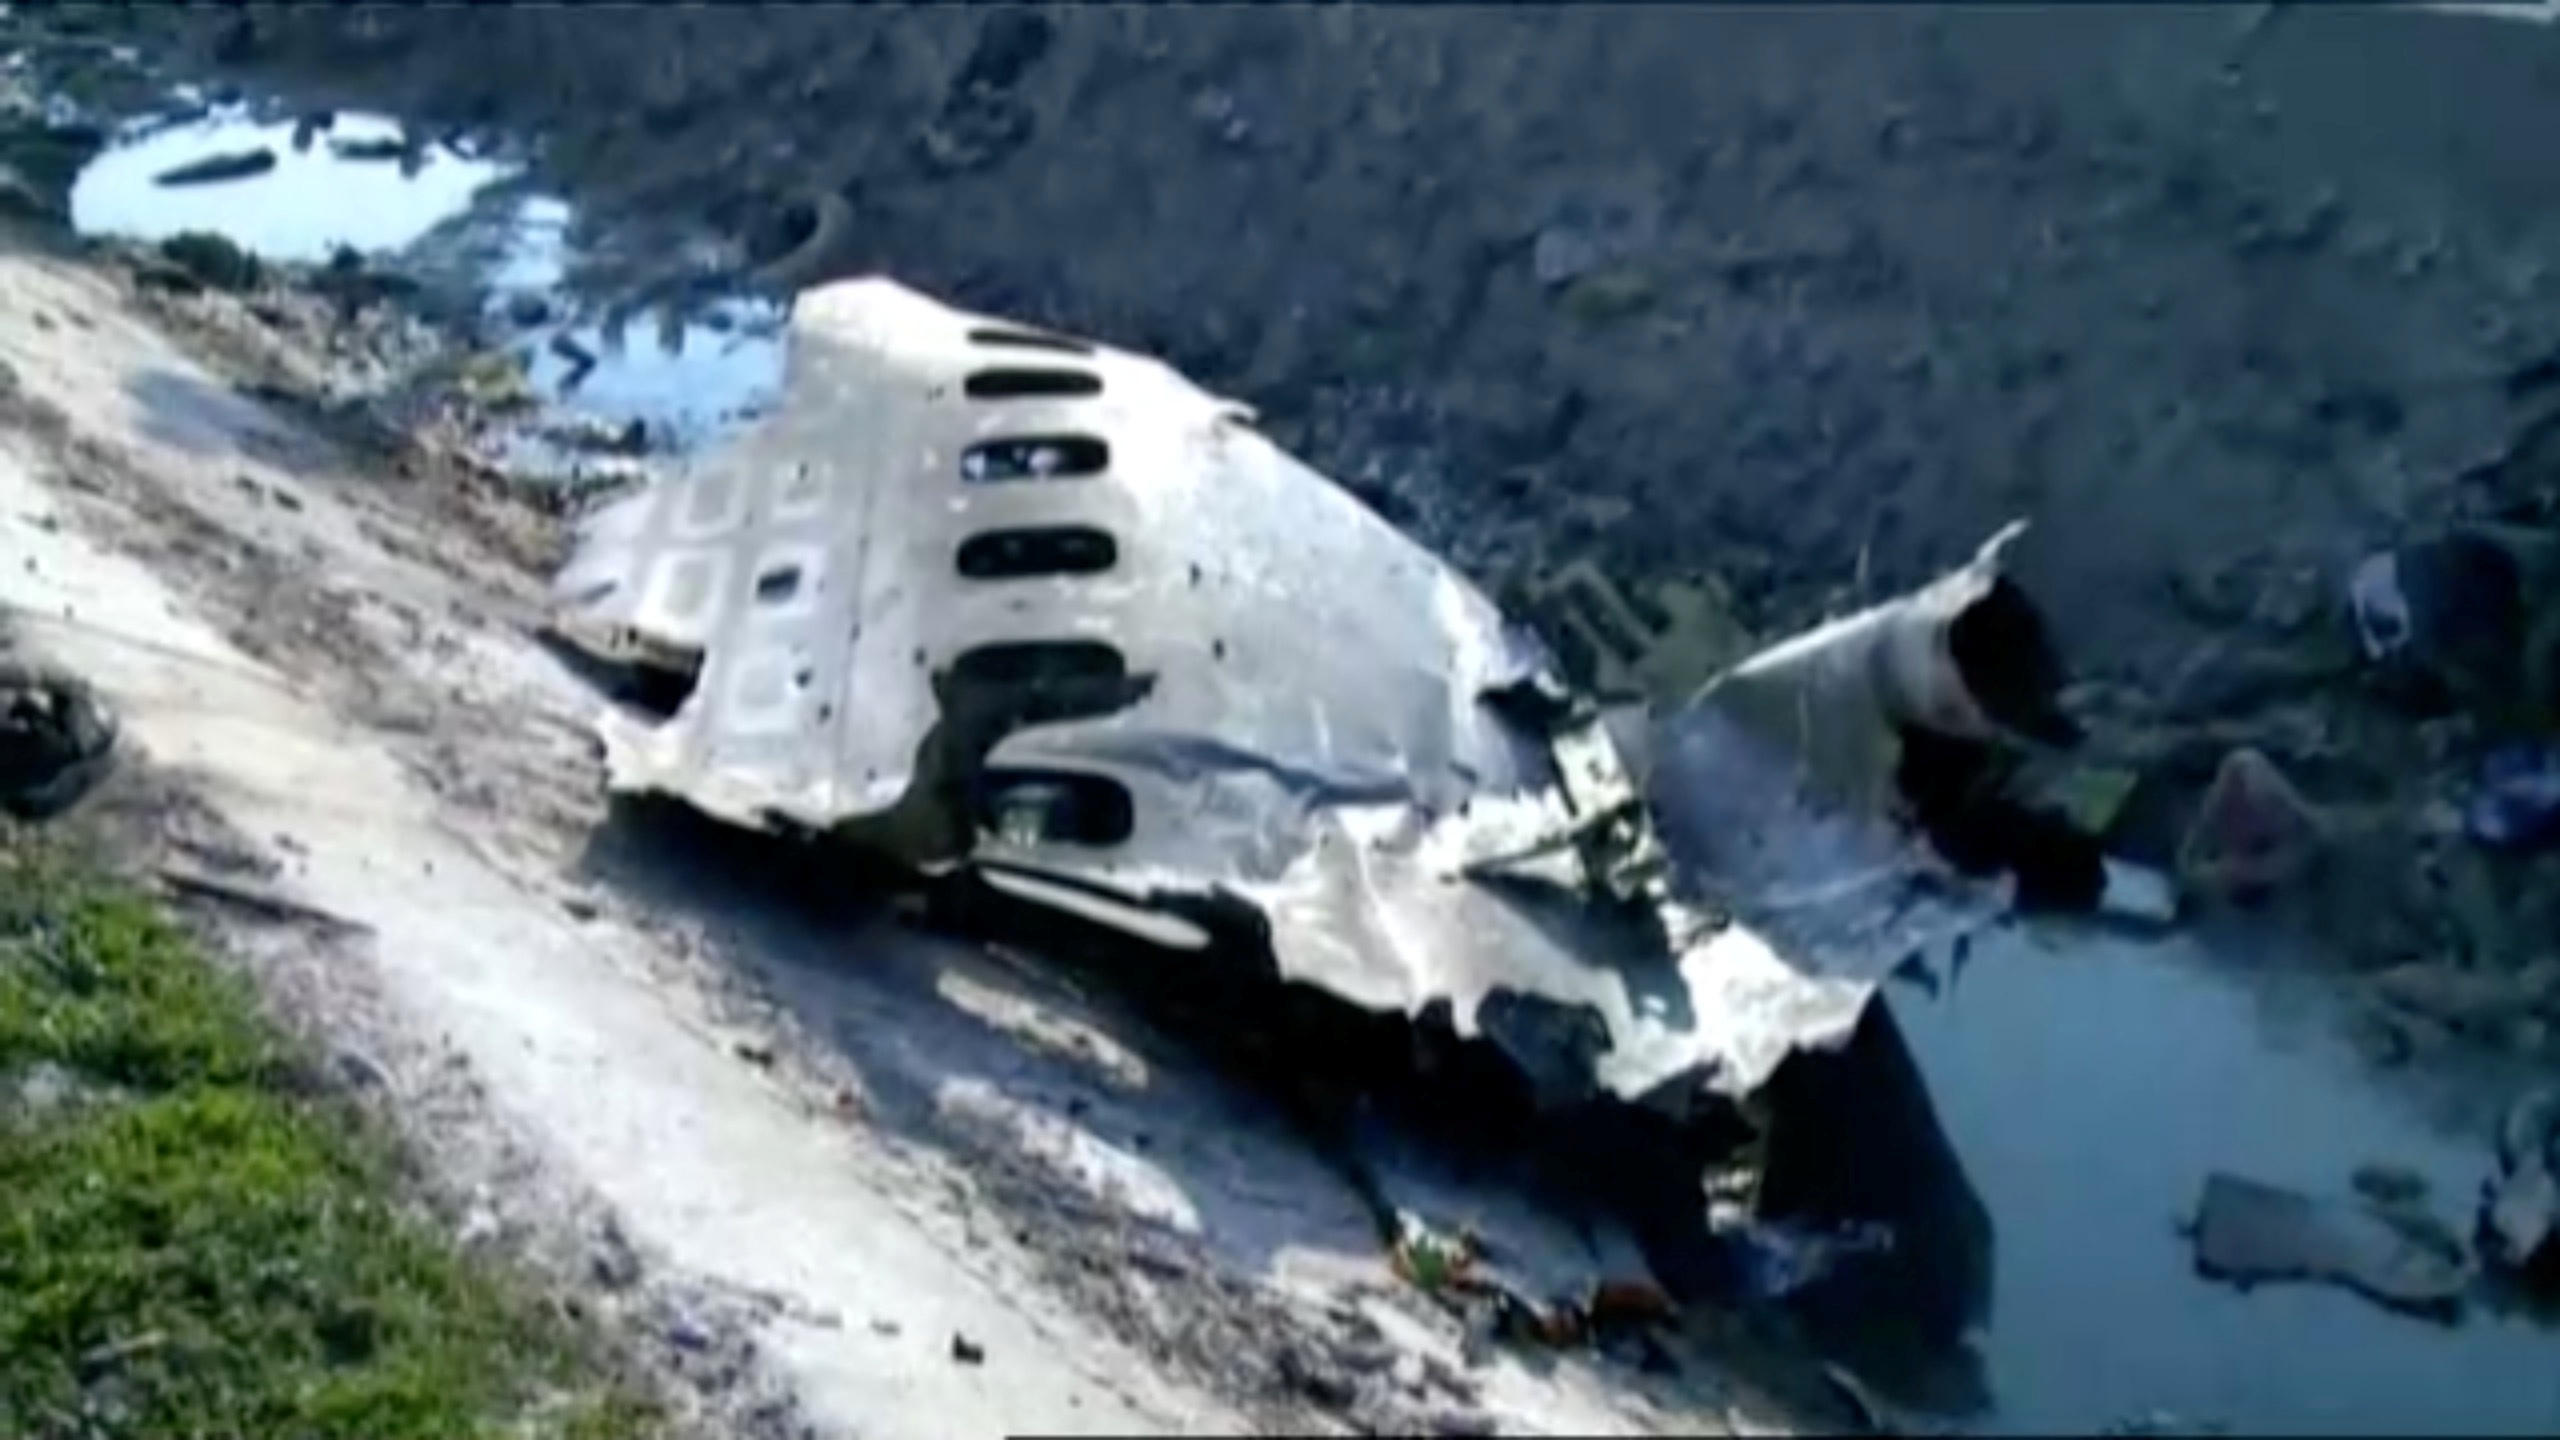 Part of the wreckage from Ukraine International Airlines flight PS752, a Boeing 737-800 plane that crashed after taking off from Tehran's Imam Khomeini airport